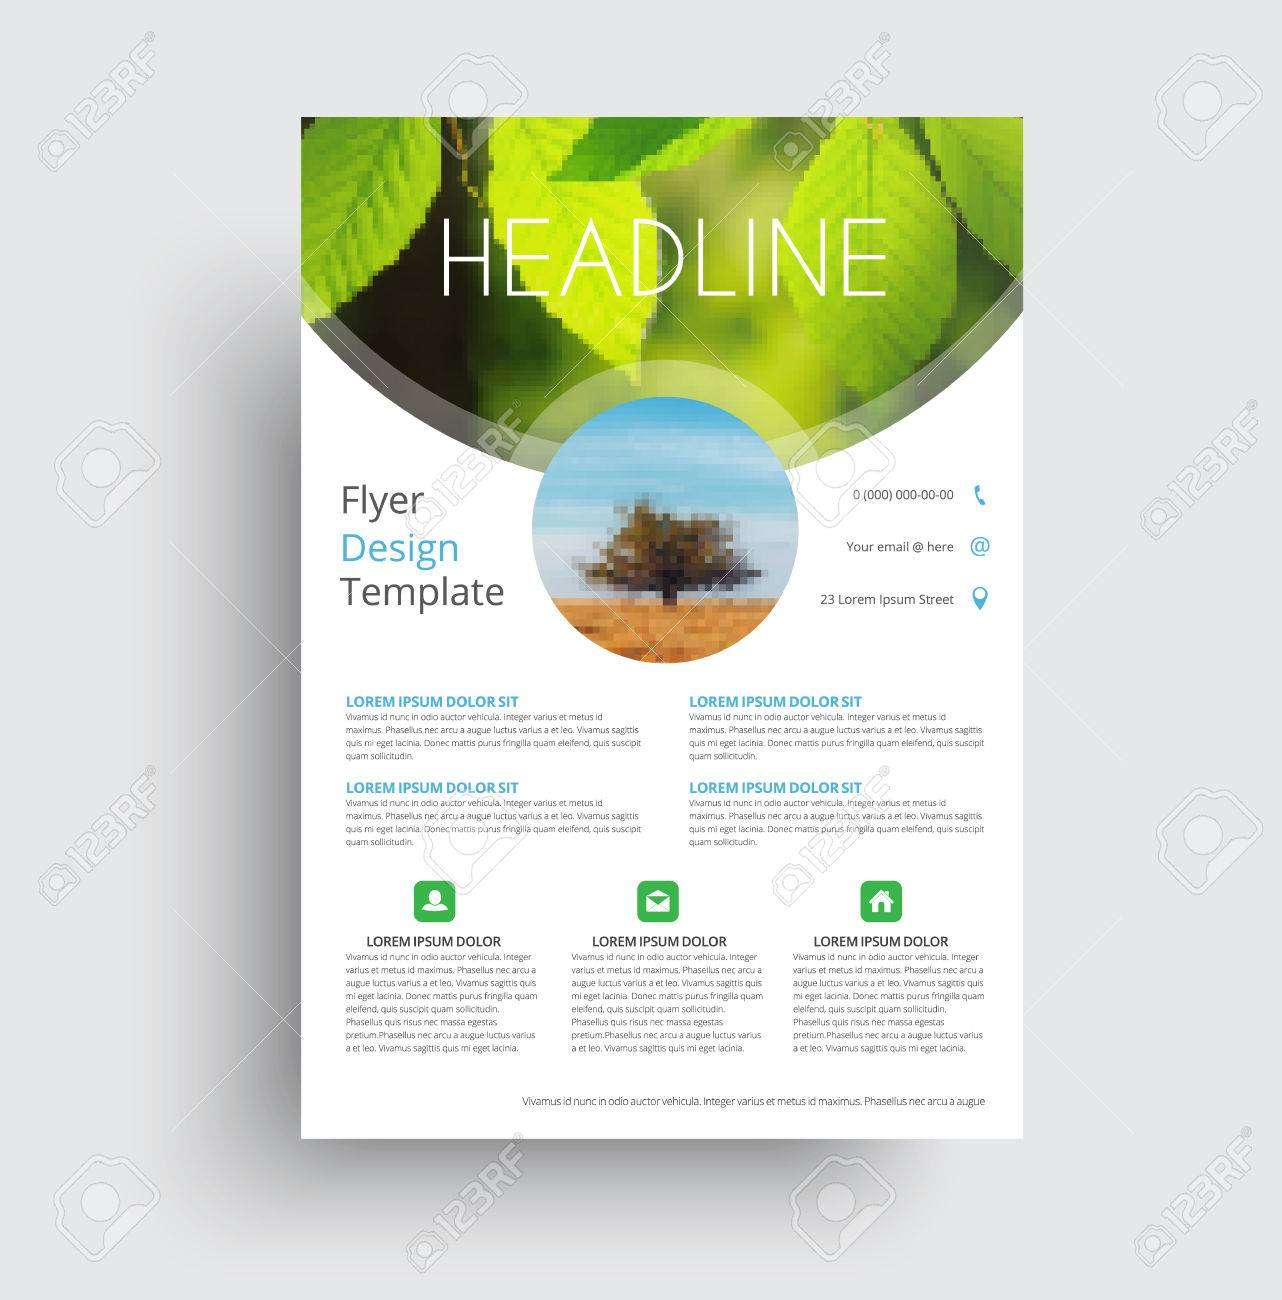 flyer format a4 format with round and semicircular elements for